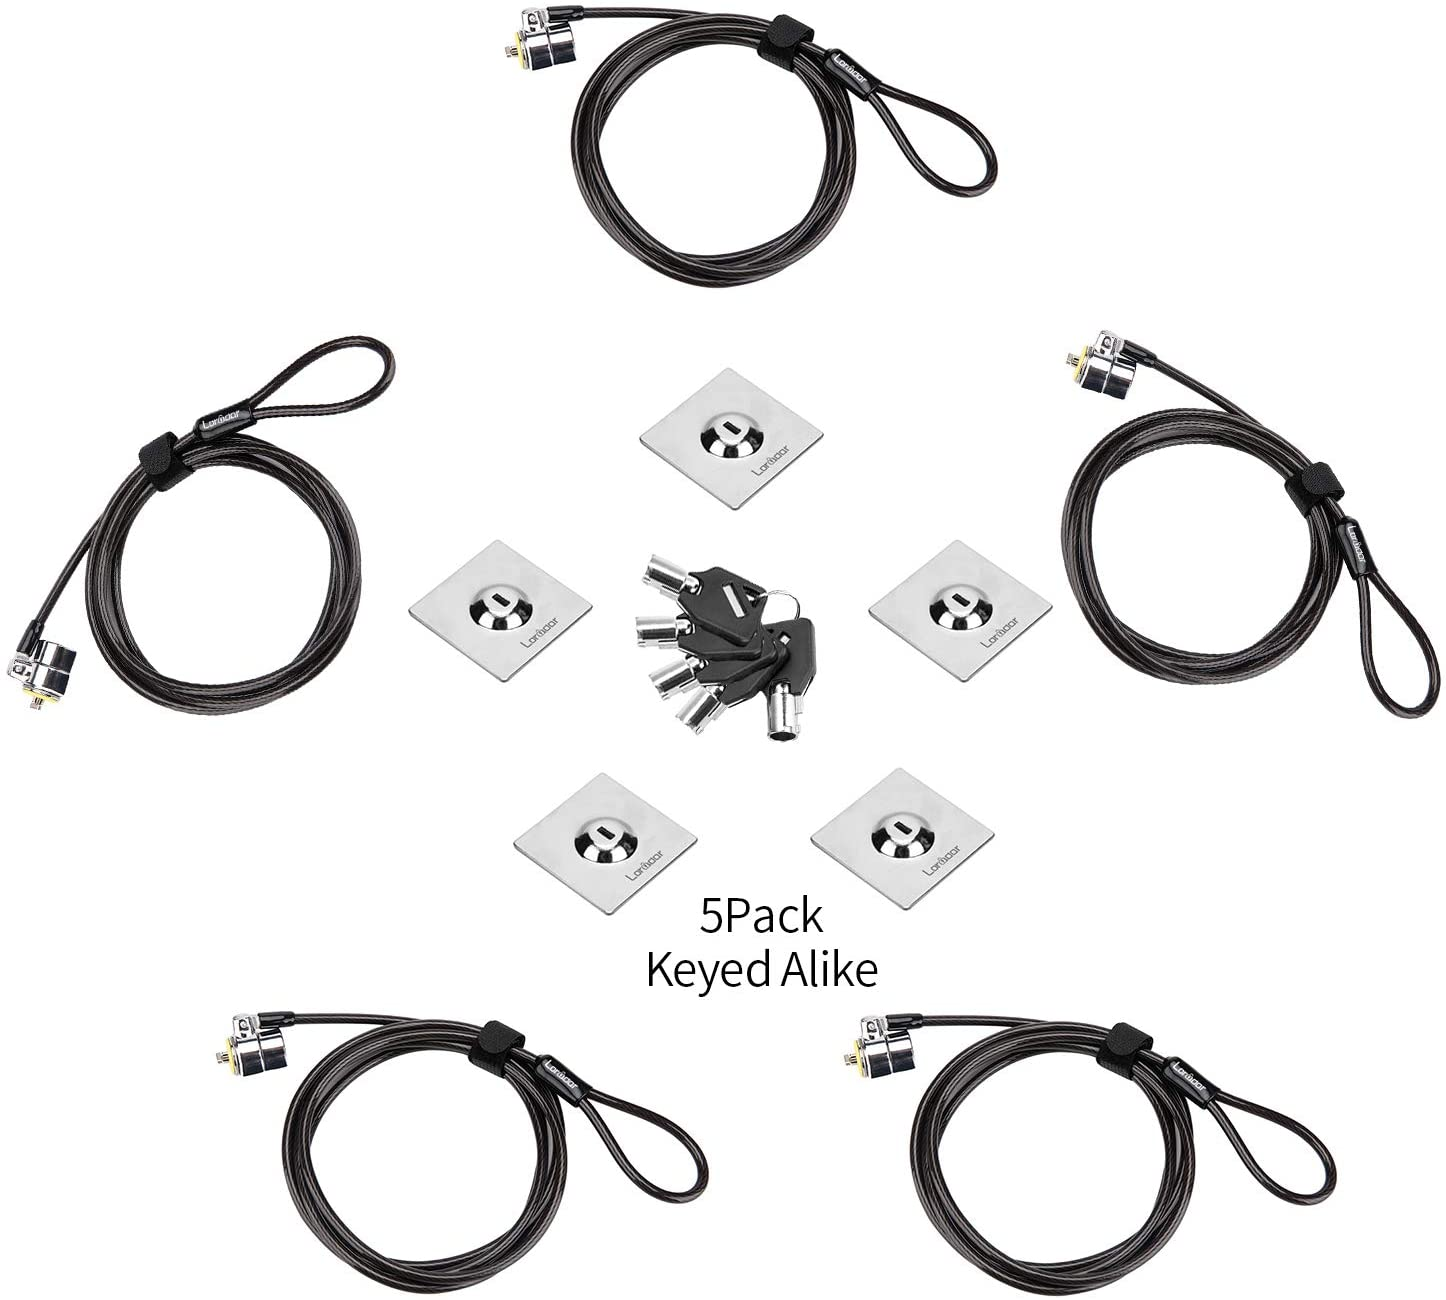 Loradar Laptop Cable Lock Hardware Security Cable Lock Anti Theft 5Keys 6.7Ft Compatible for Laptops, iMac,Out Door TV,Mac Mini,& Other Devices Longer Cable (Keyed Alike 5Pack)